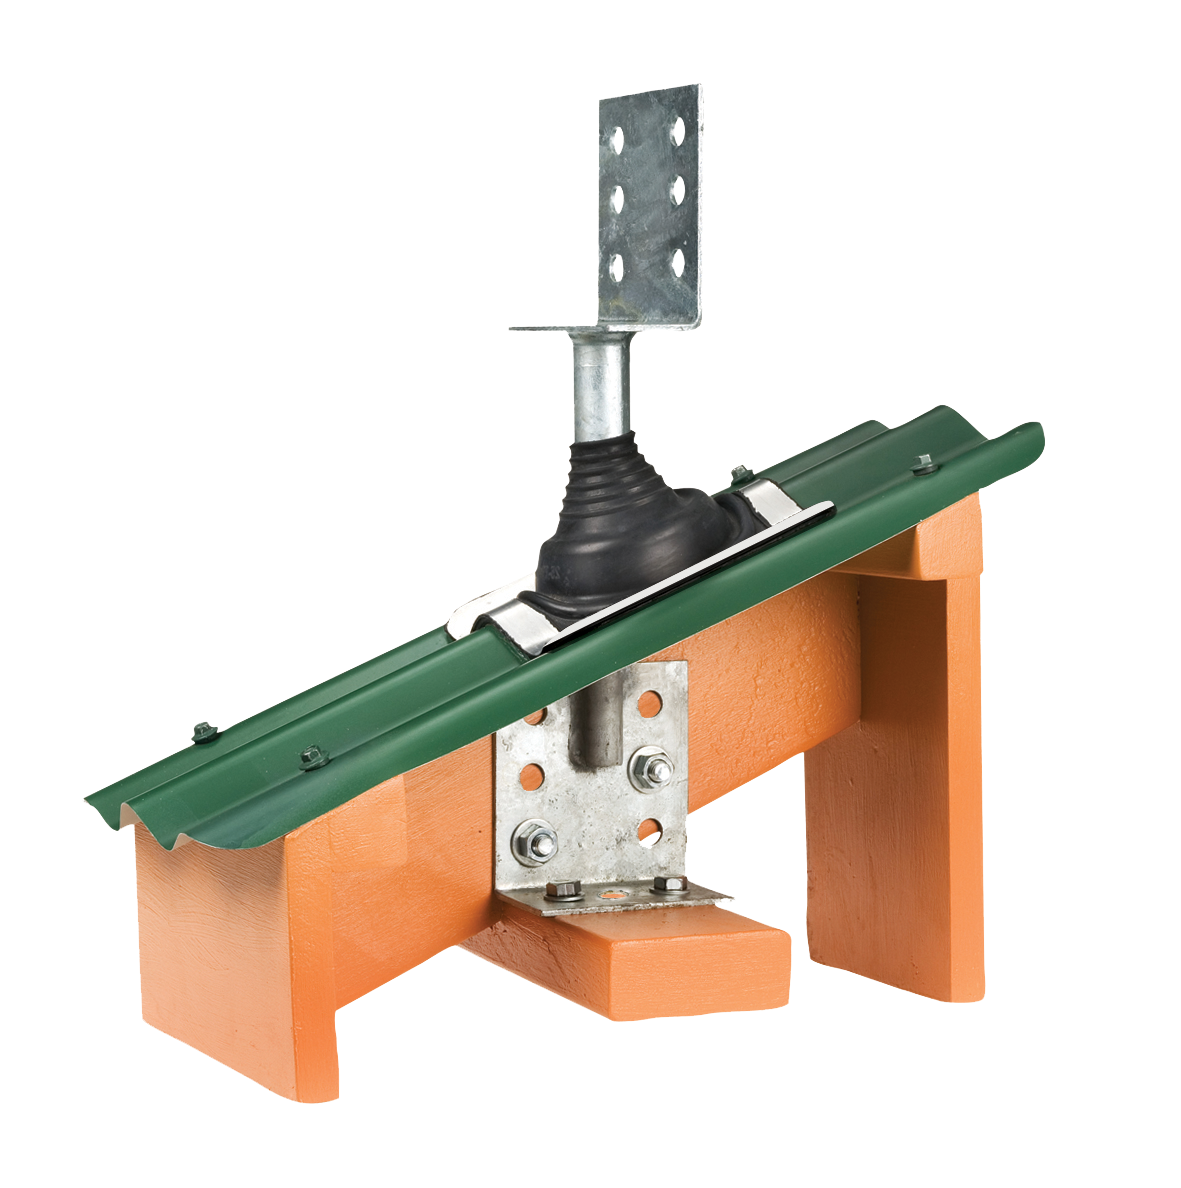 (attaching pergola to roof over gutter) Roof Extenda Brackets -  BuyBuildingSupplies.com.au - Attaching Pergola To Roof Over Gutter) Roof Extenda Brackets